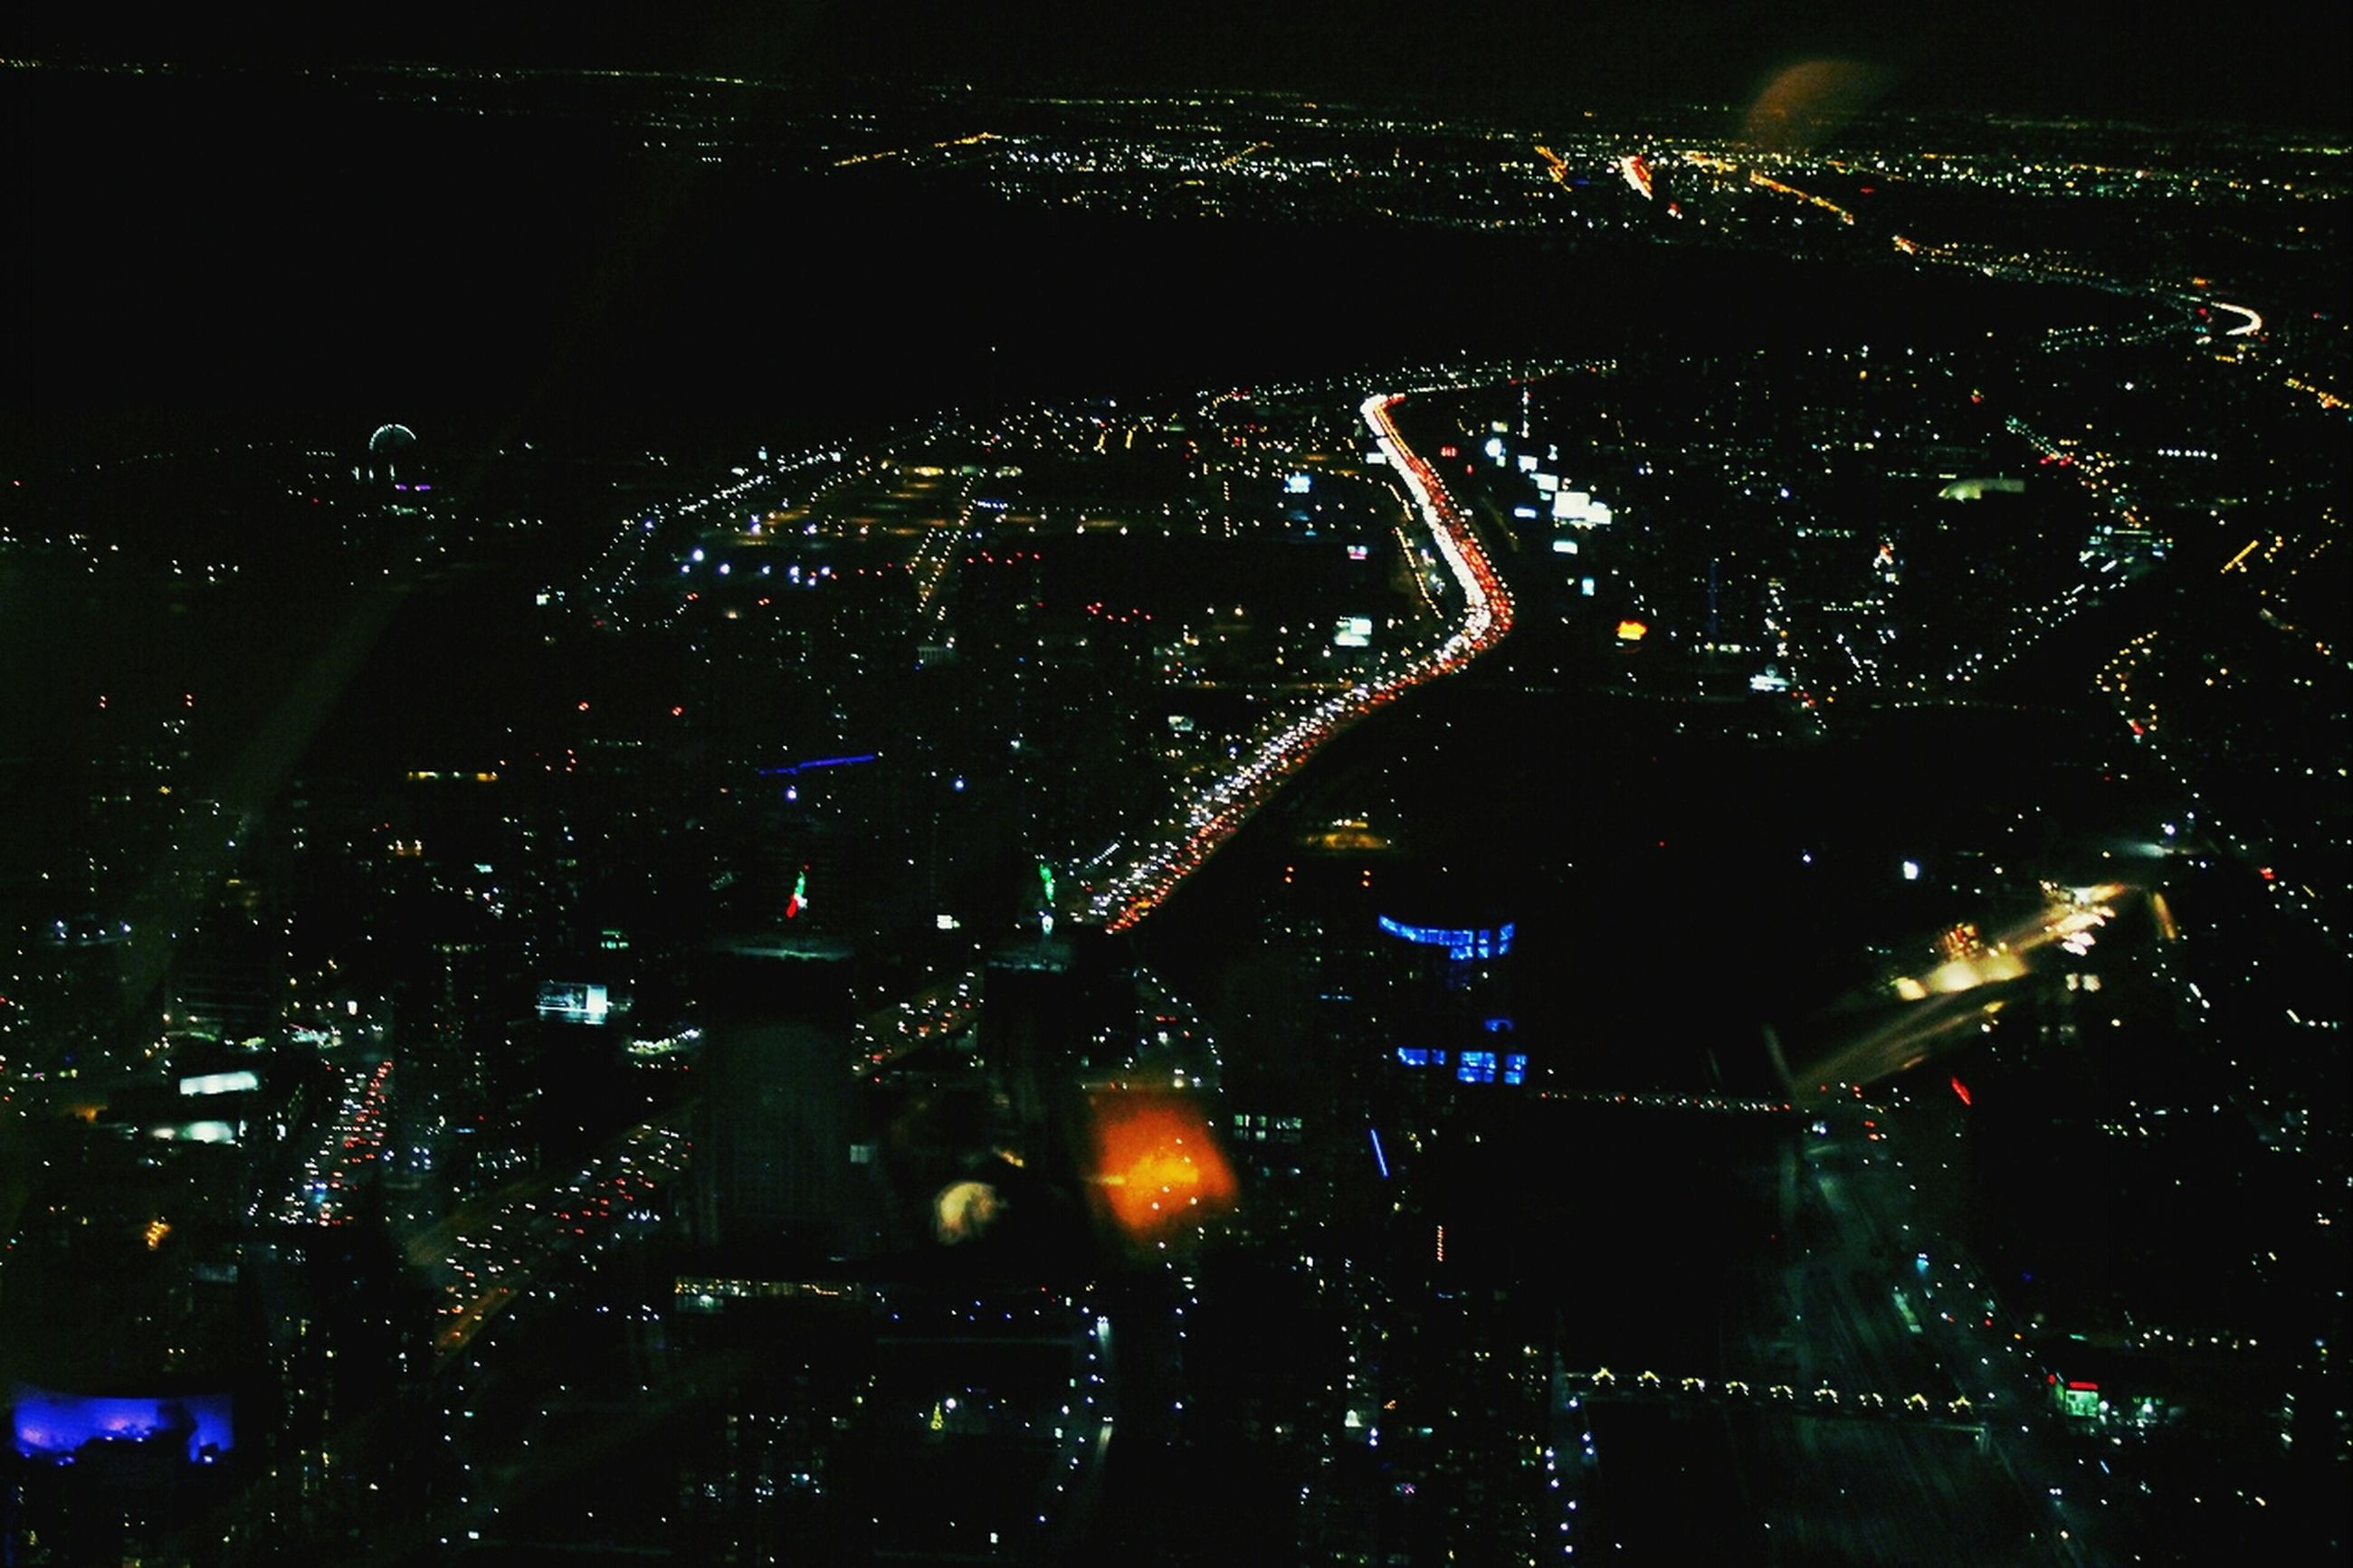 night, illuminated, cityscape, city, aerial view, high angle view, crowded, building exterior, architecture, dark, built structure, light - natural phenomenon, no people, glowing, light, lighting equipment, outdoors, city life, sky, residential district